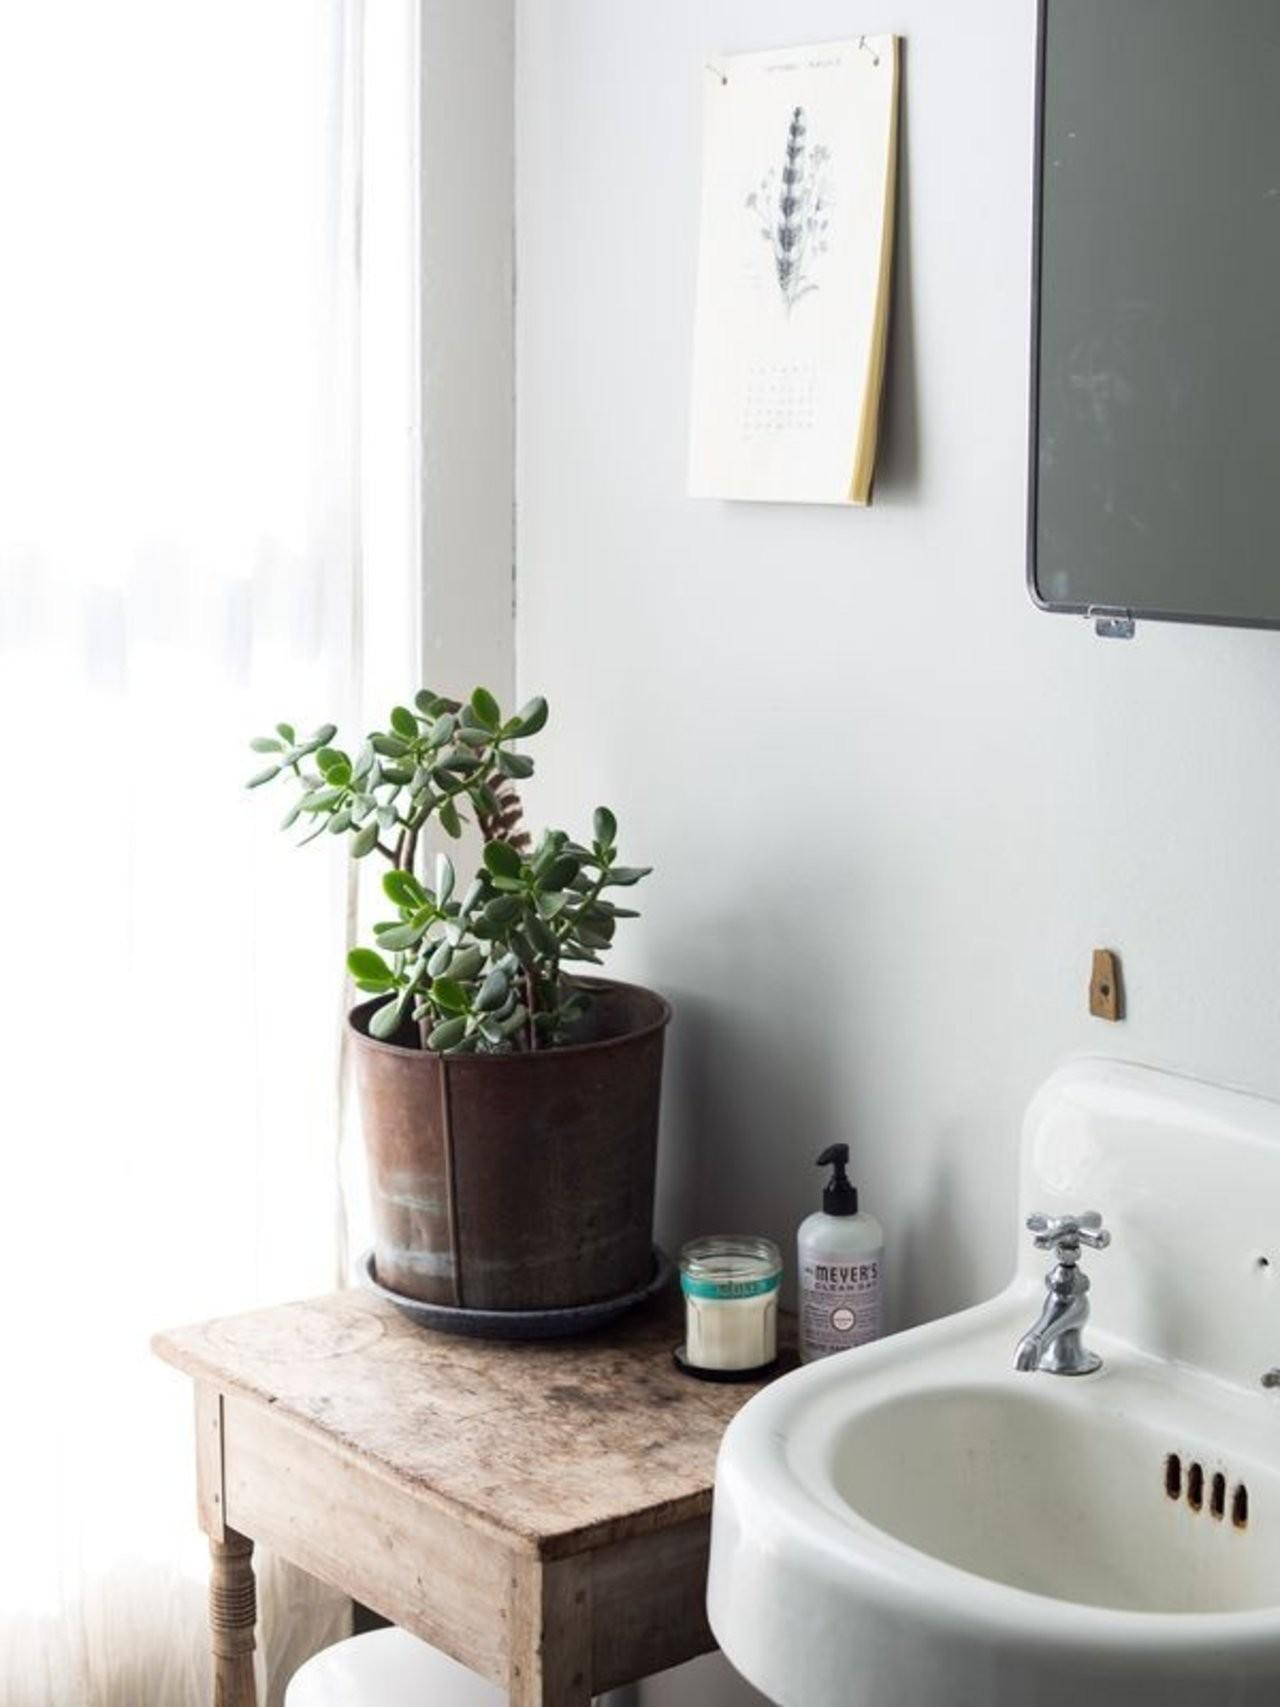 Houseplants Survive Your Busy Schedule